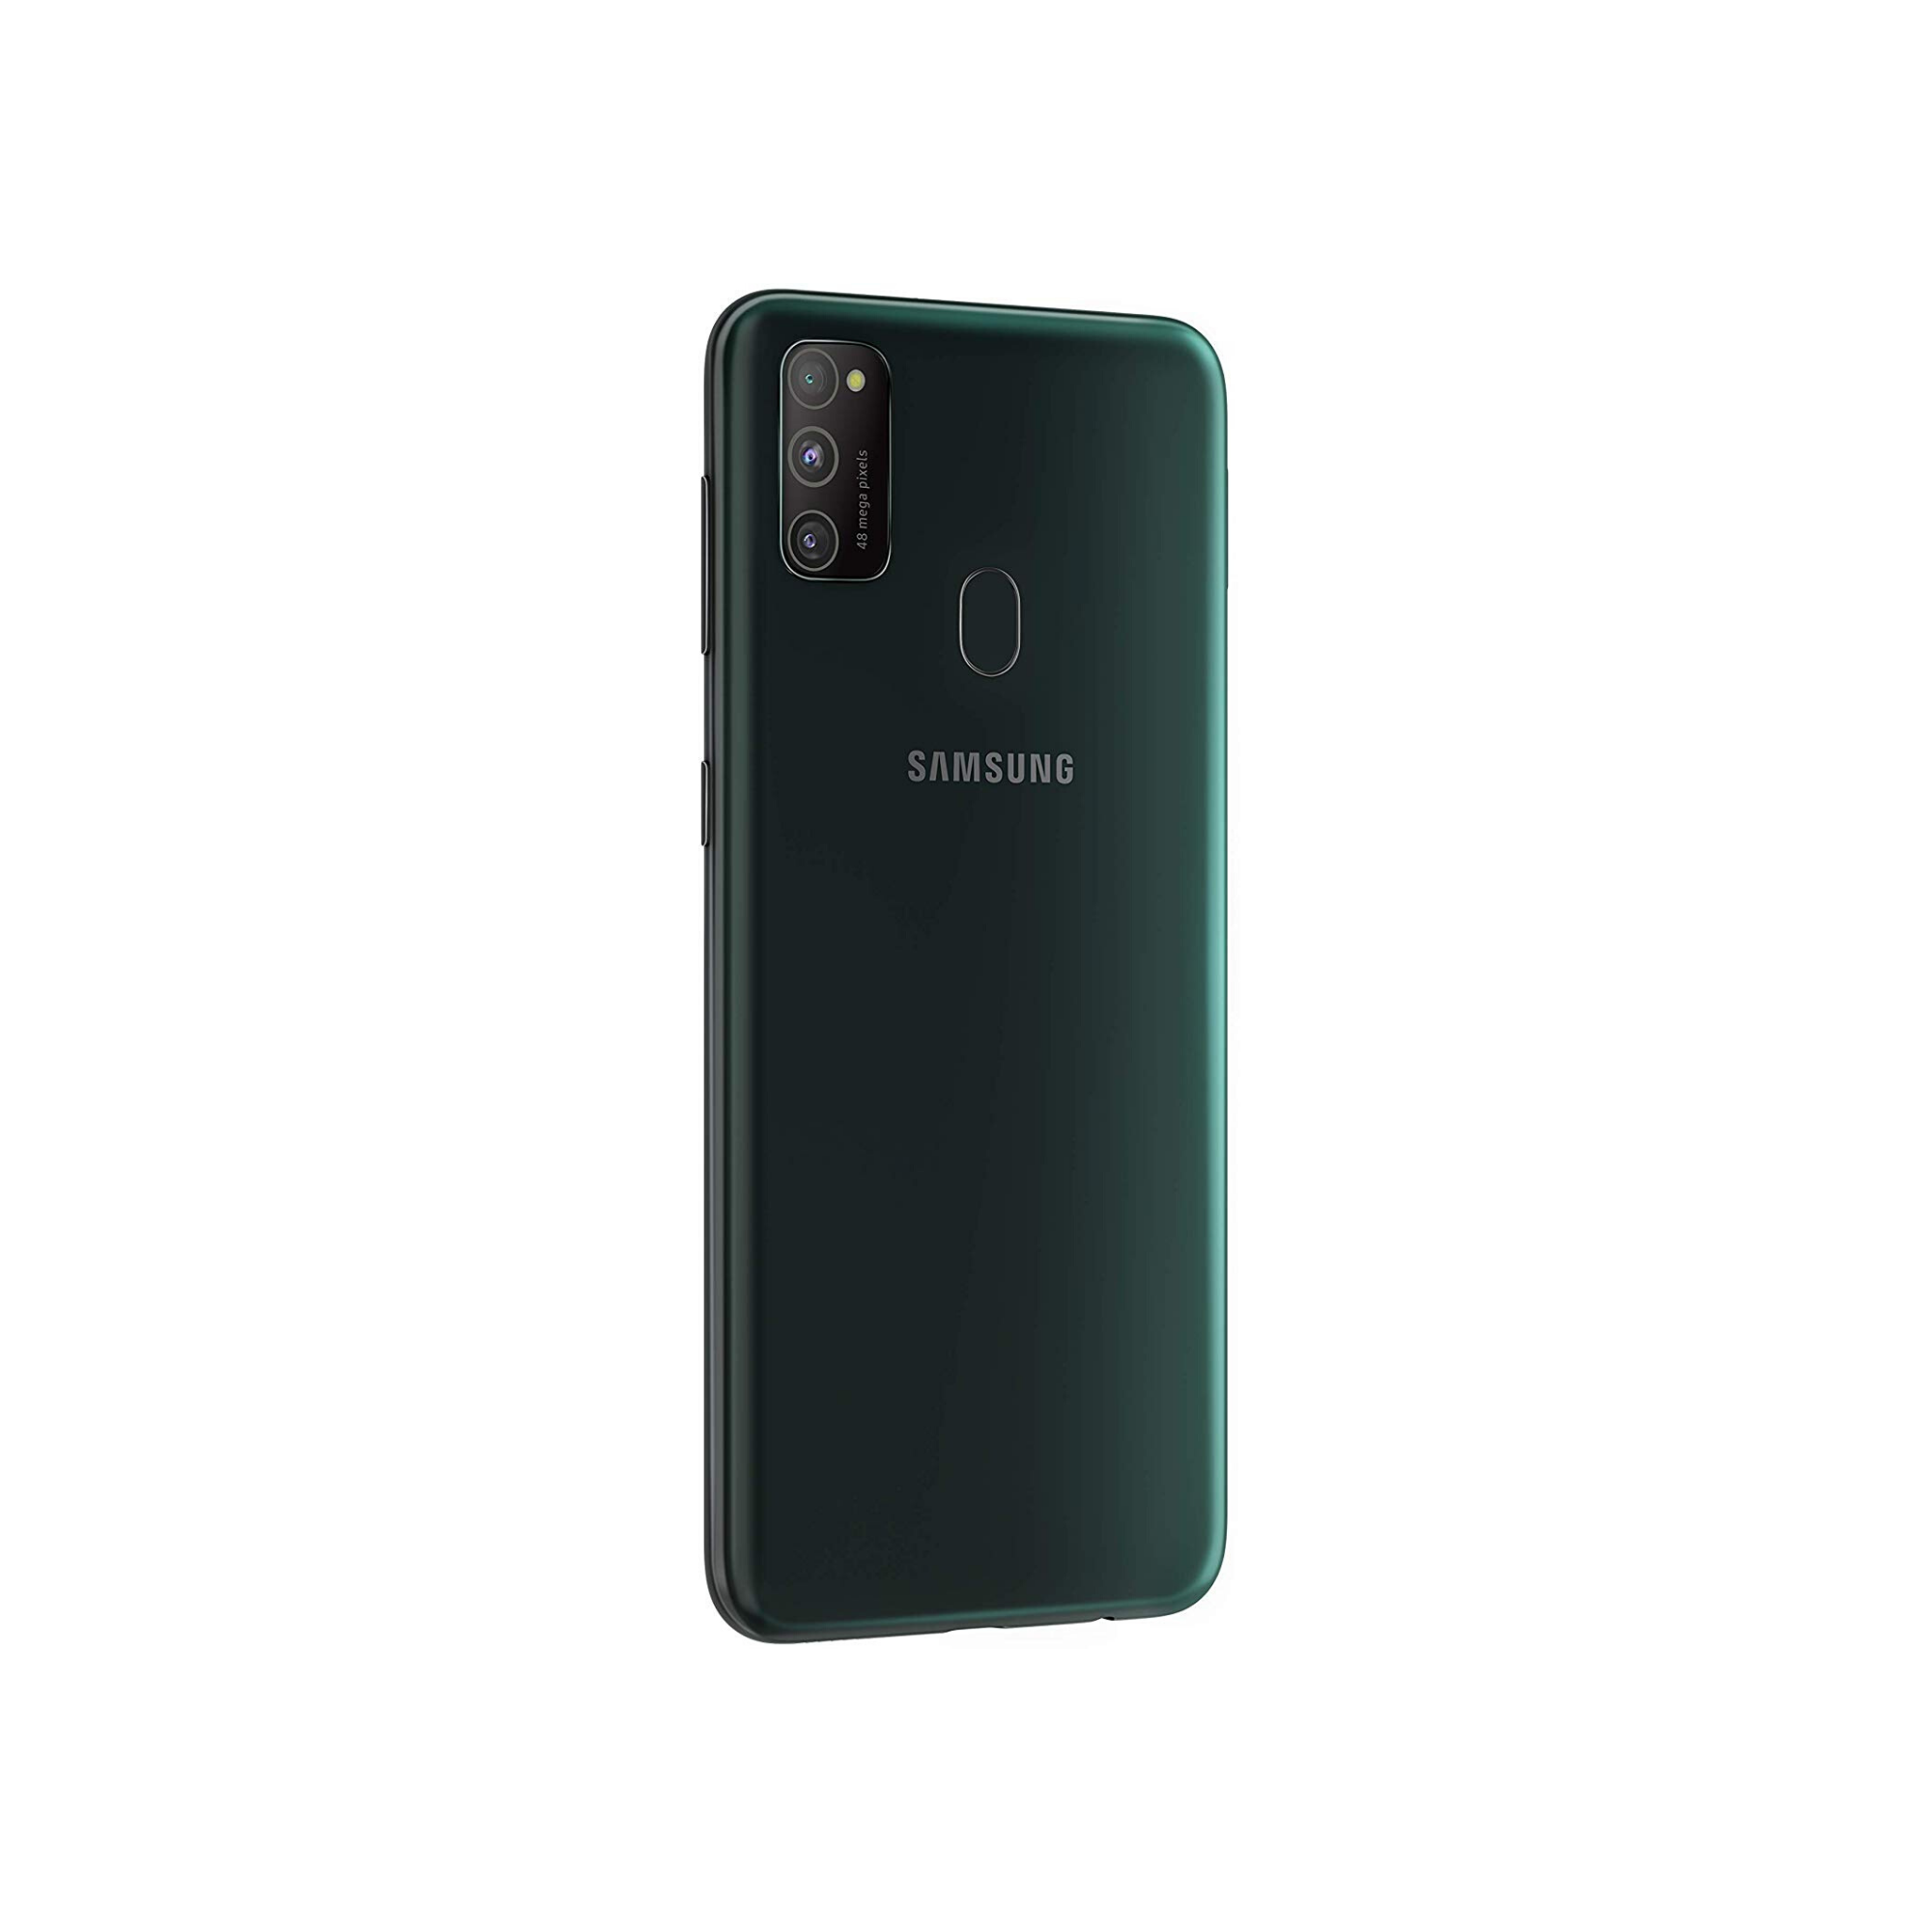 Samsung Galaxy M30s (Quartz Green, 4GB RAM, 64GB Storage)